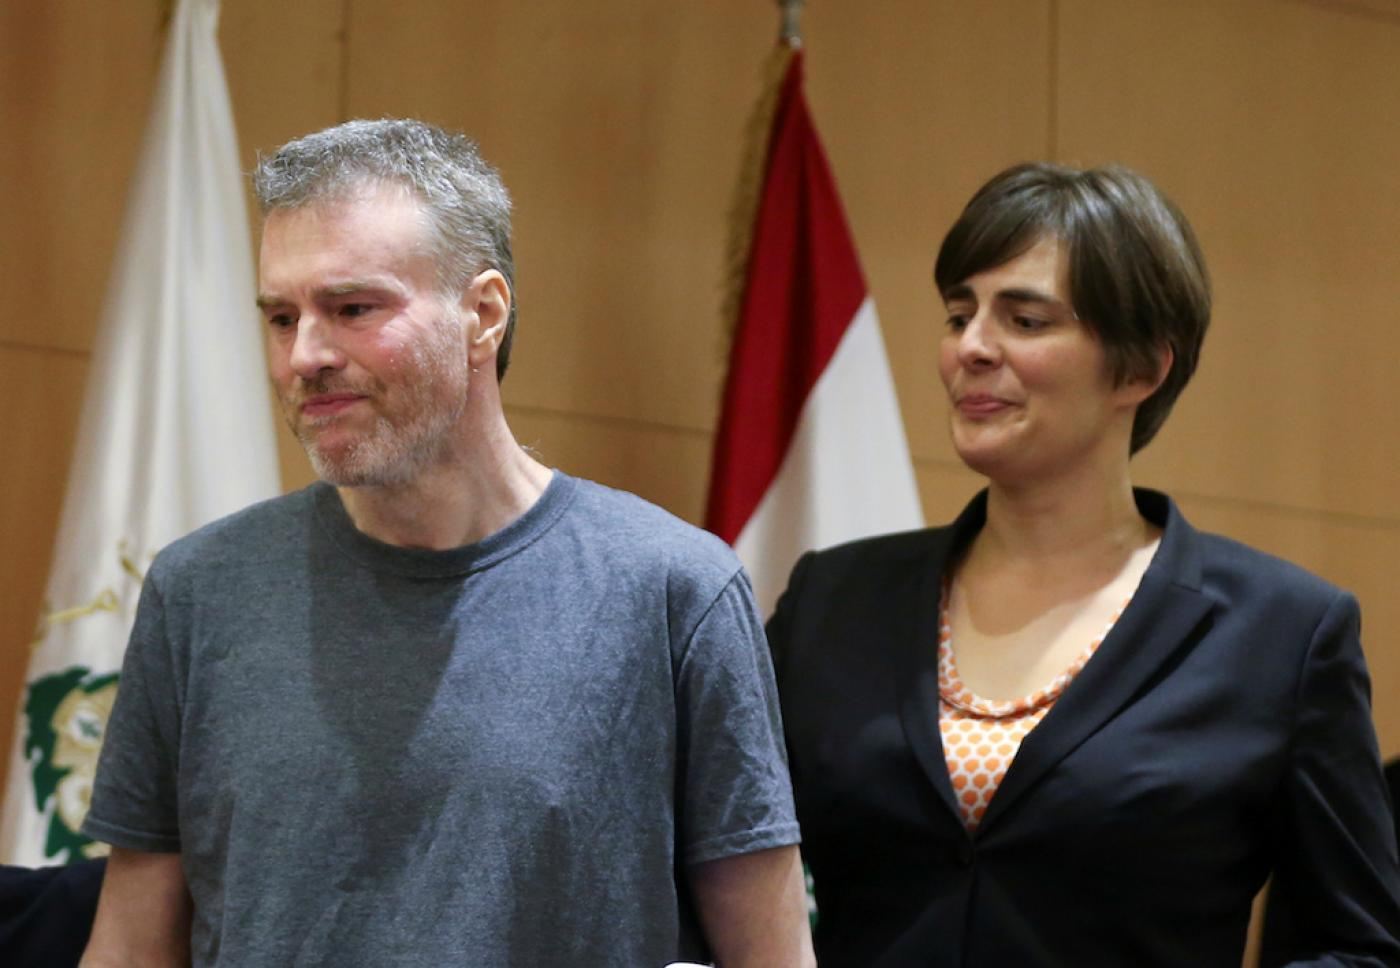 B.C. man detained in Syria last year freed after Lebanese mediation